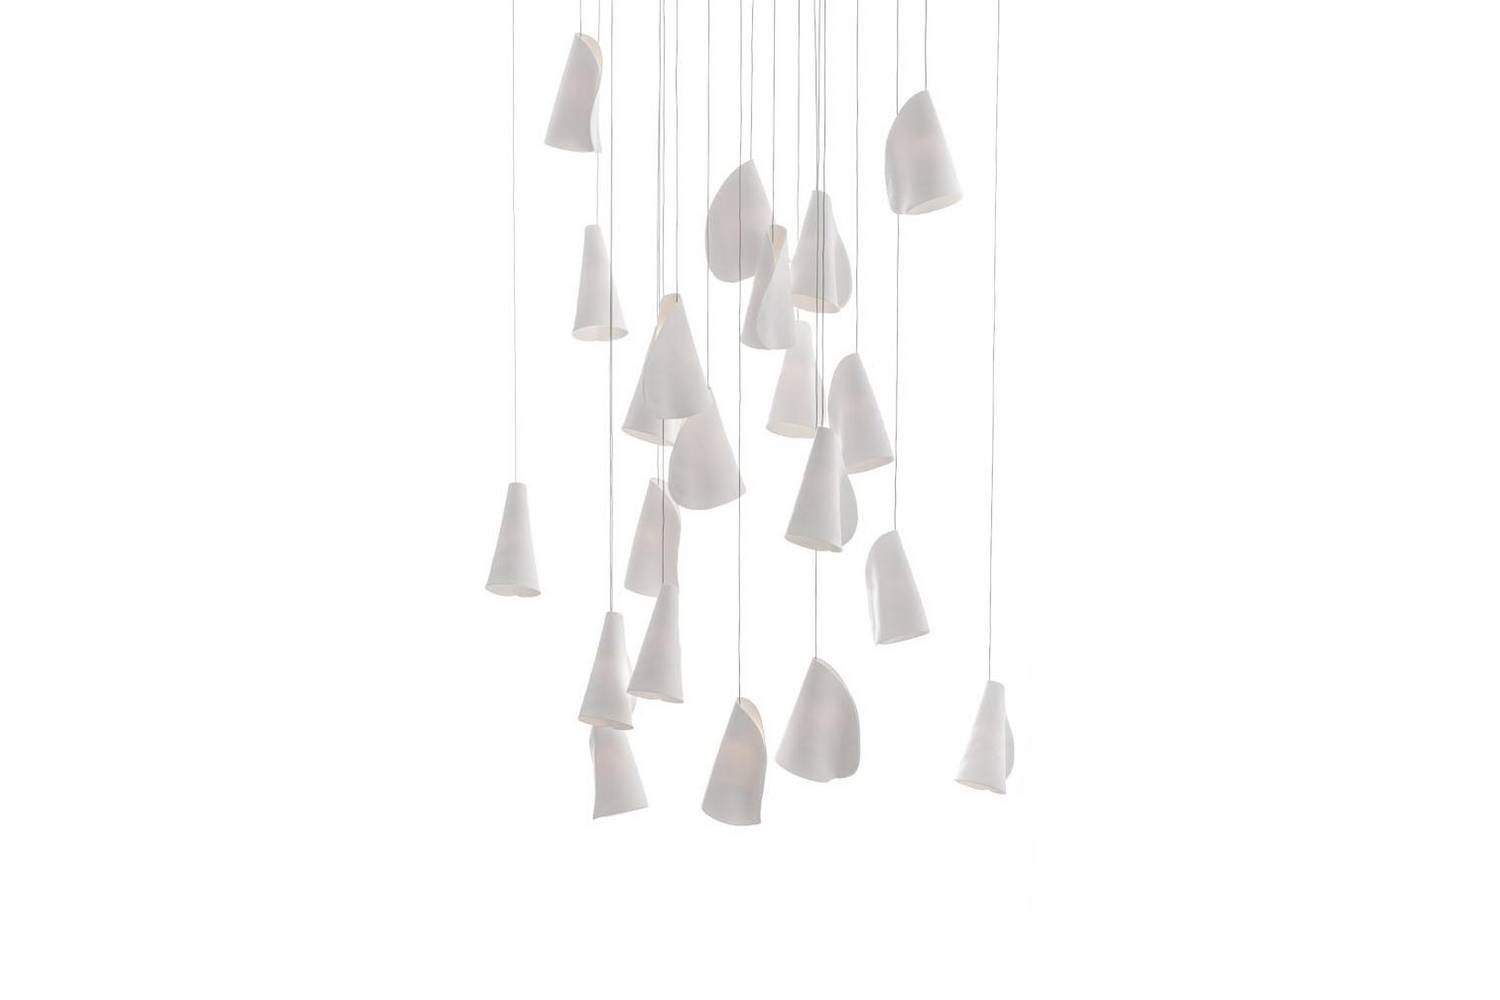 21.21 Standard Suspension Lamp by Omer Arbel for Bocci